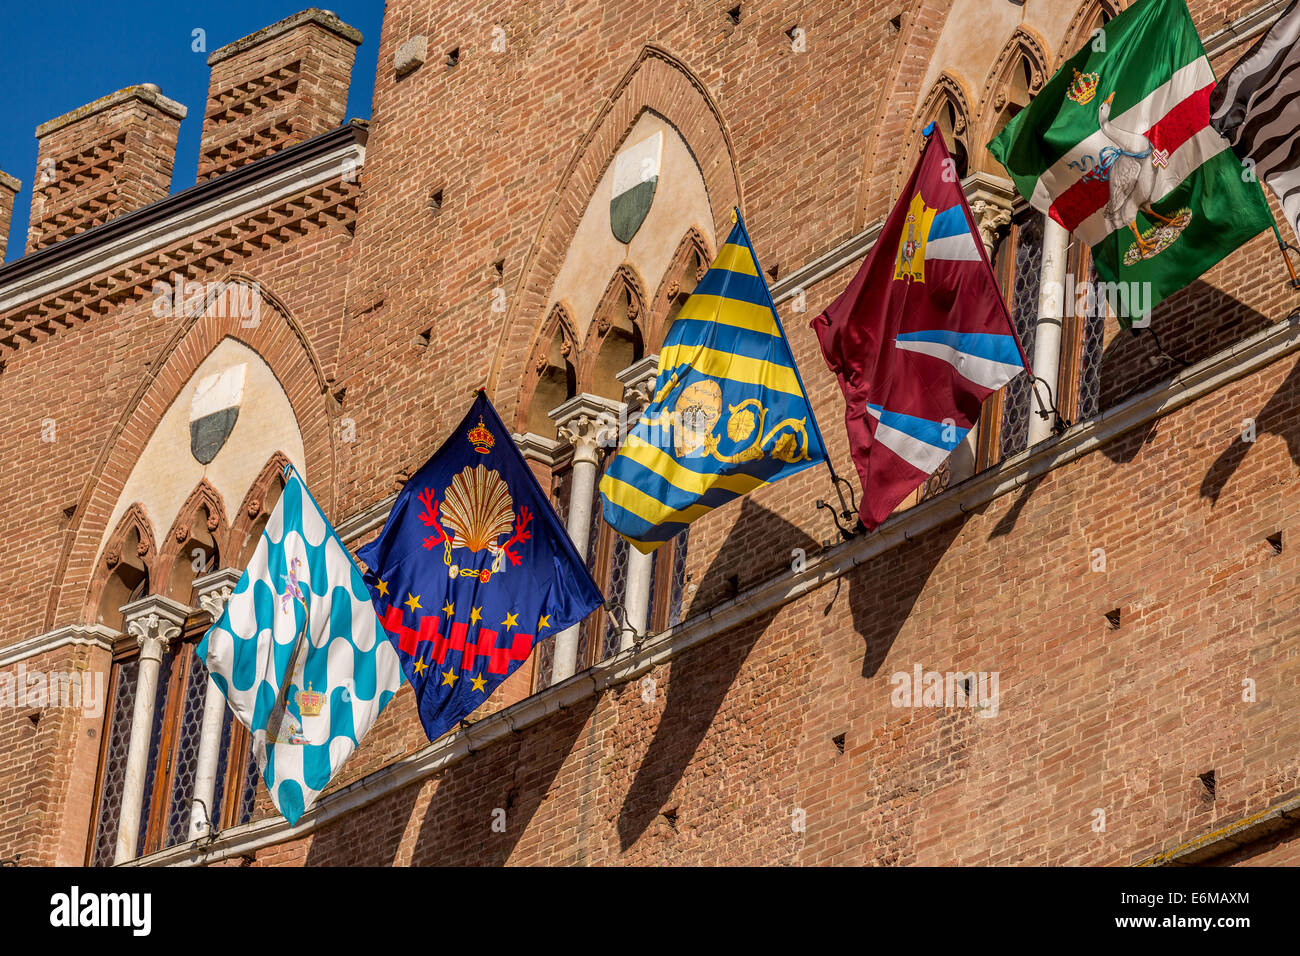 Siena on the day of the Palio horse race with flags and banners decorating the town hall, Siena, Italy - Stock Image